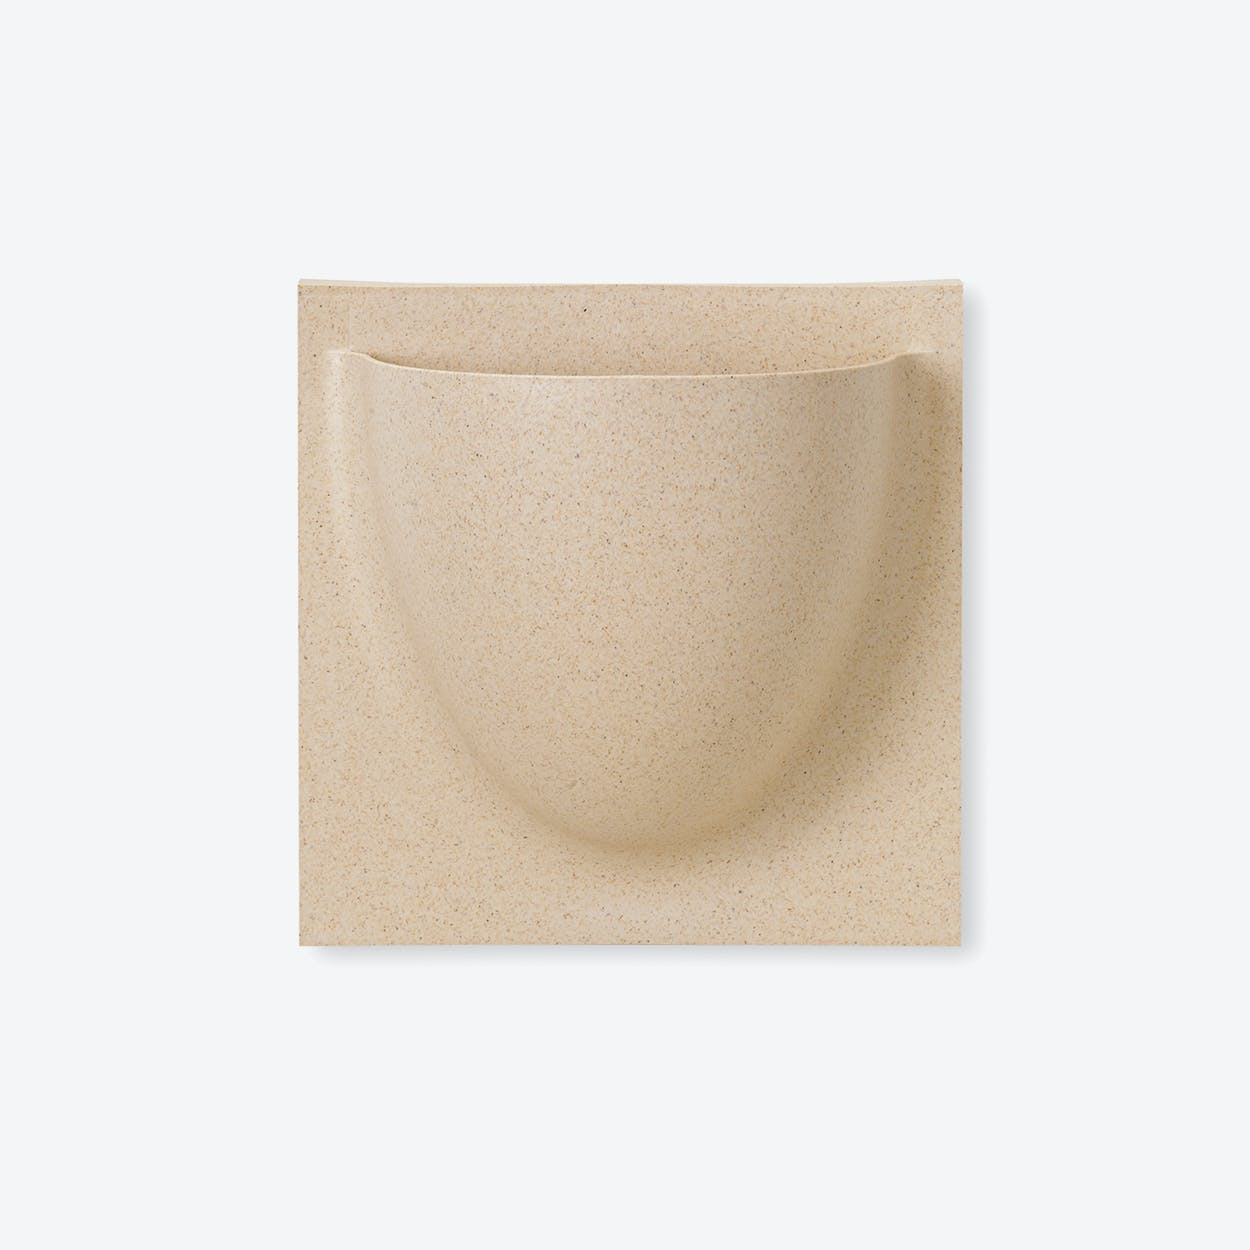 Wall Planter / Jar Mini in Biobeige (Biofiber) (Set of 2)